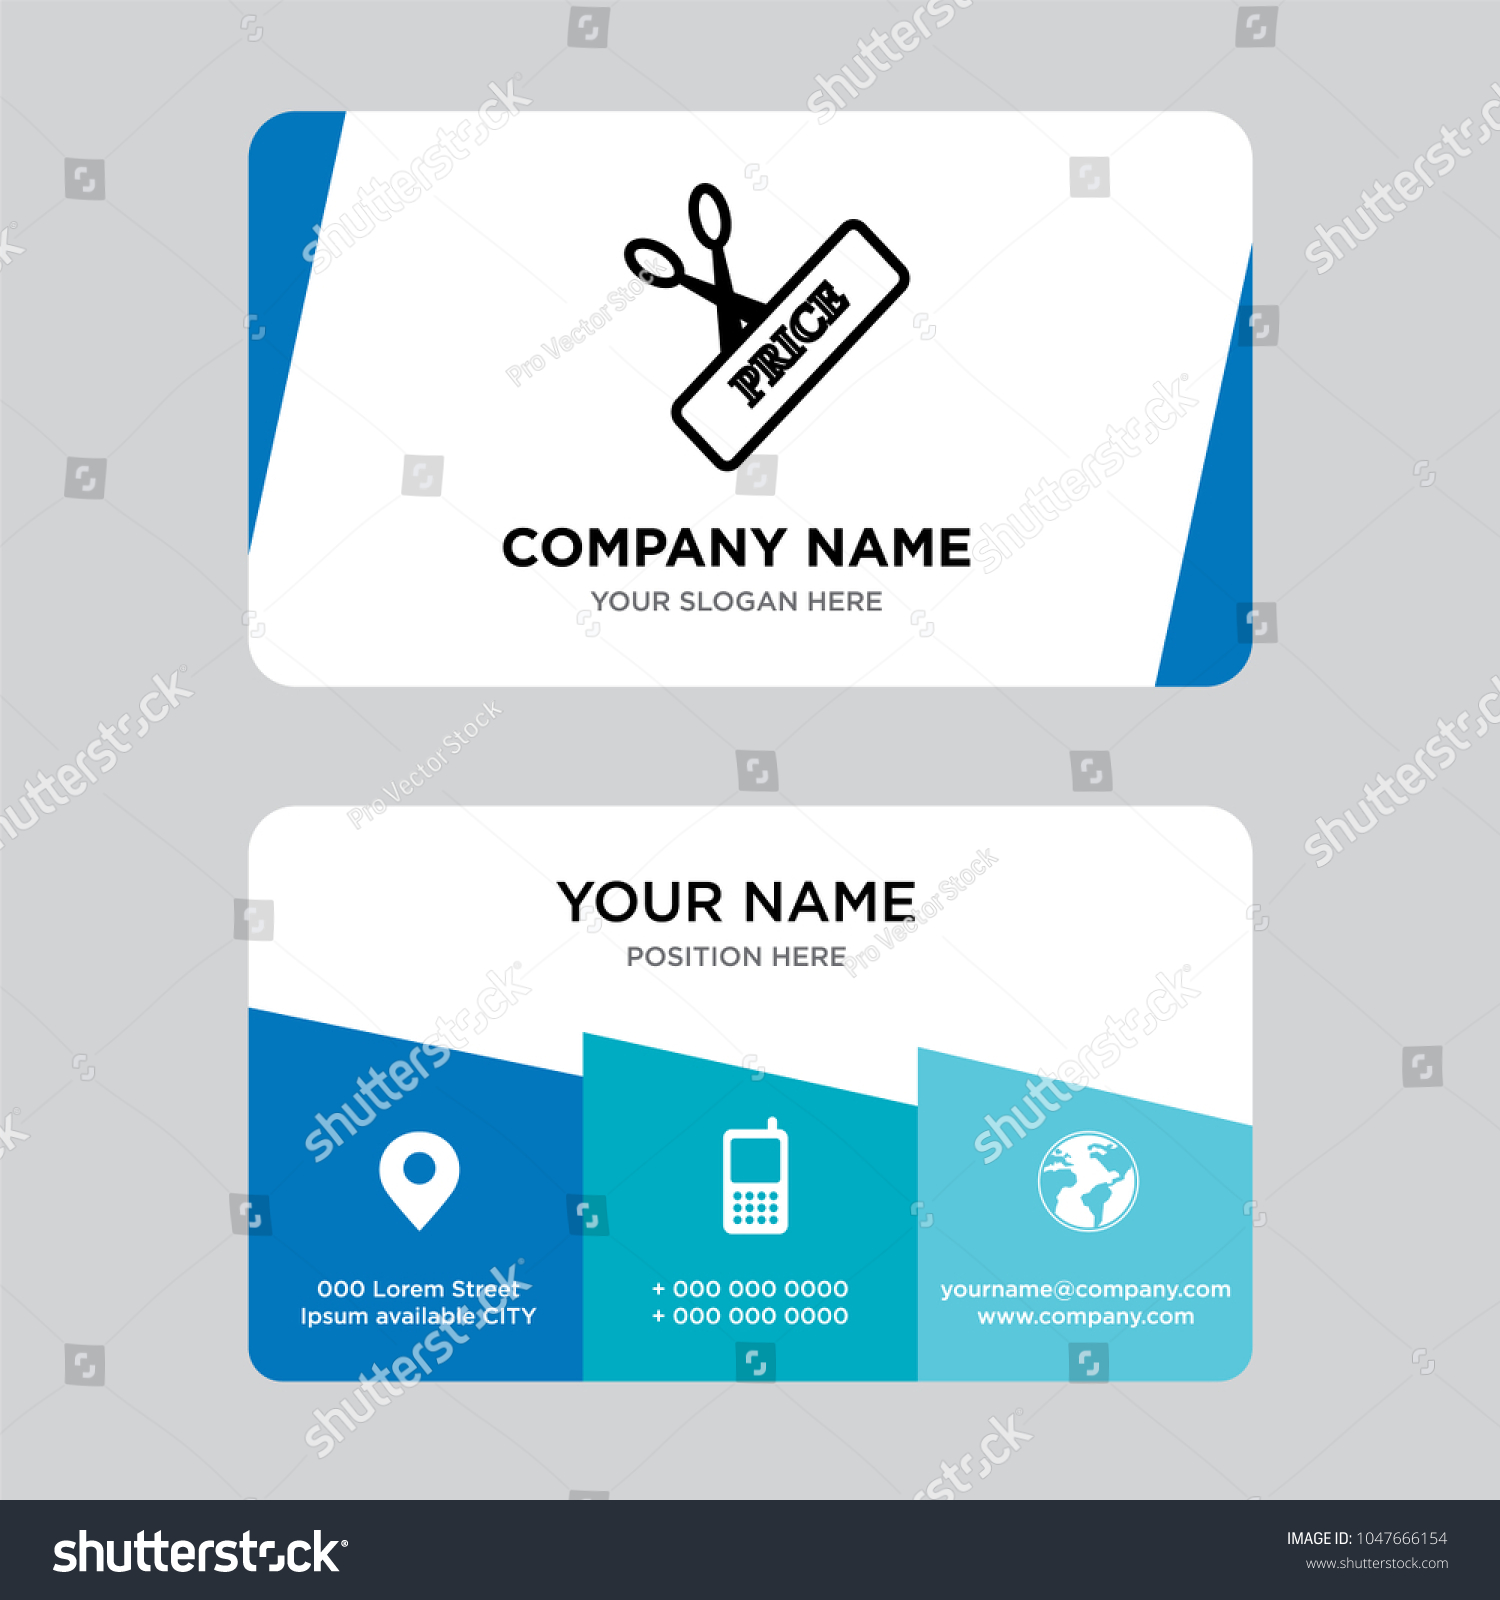 Scissors Price Business Card Design Template Stock Vector 1047666154 ...